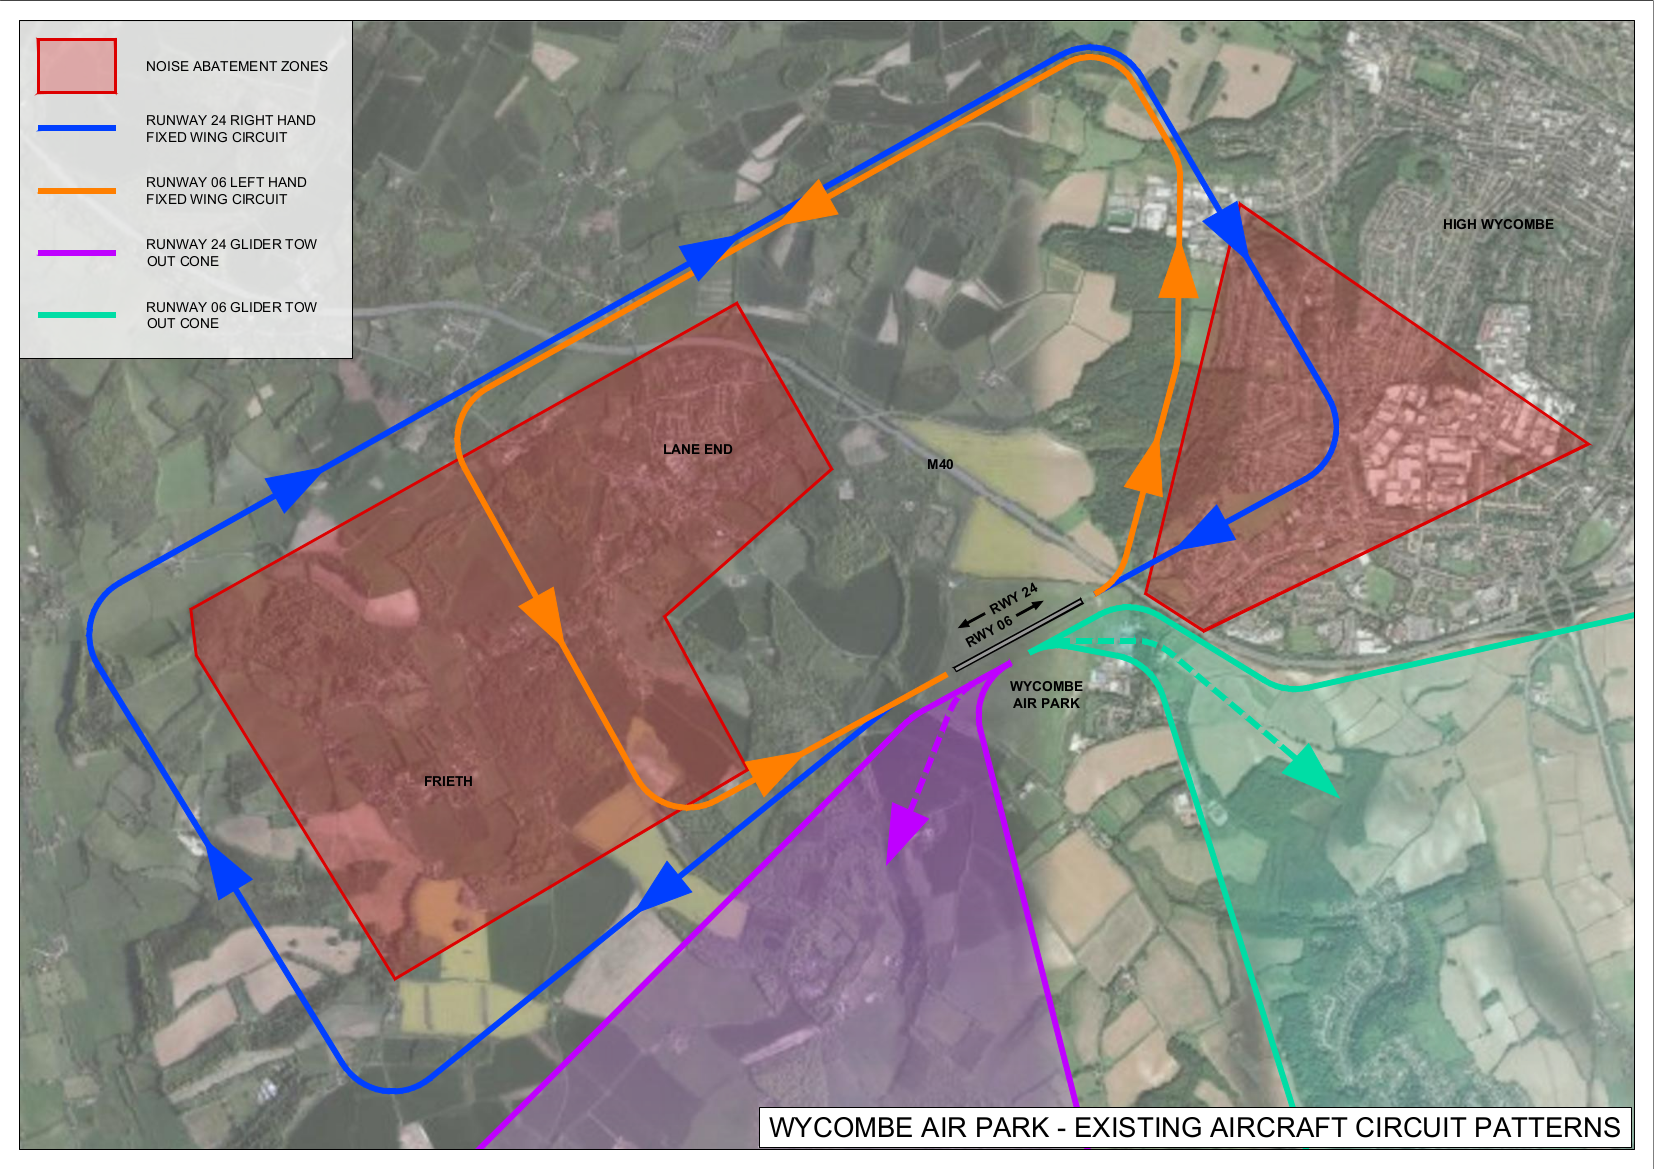 This map shows the existing aircraft circuit patterns, including the runway 24 right-hand fixed-wing circuit, runway 06 left-hand fixed-wing circuit, runway 24 glider tow-out cone, runway 06 glider tow-out cone, and the noise abatement zones.